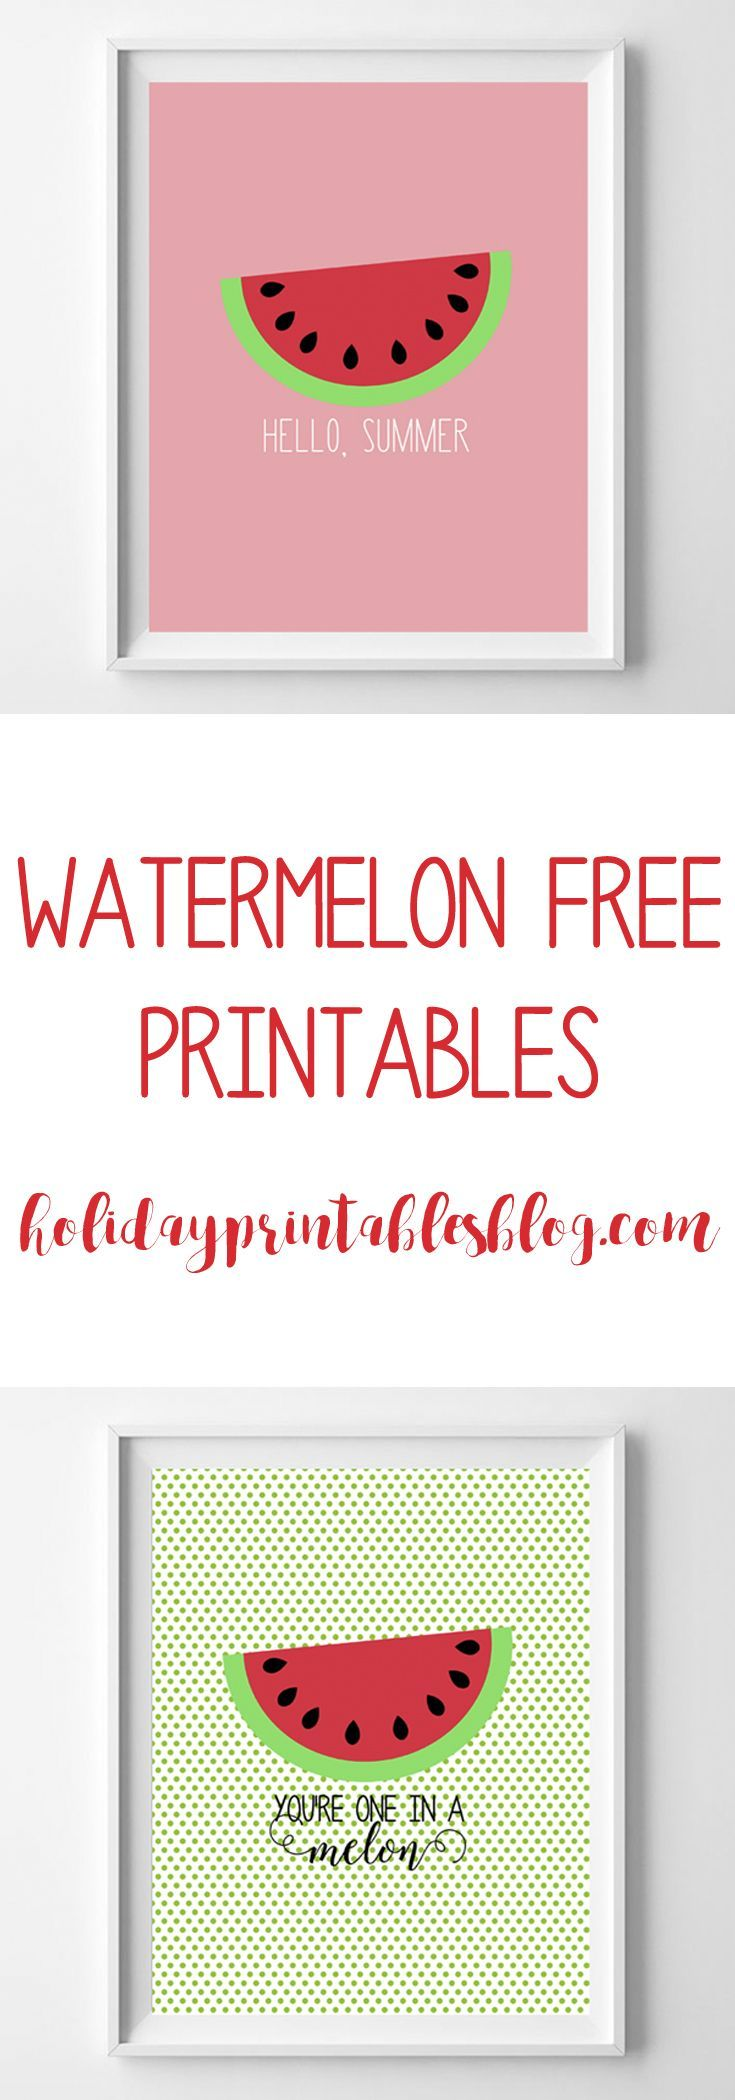 Free watermelon printables! Easy and inexpensive summer decor!